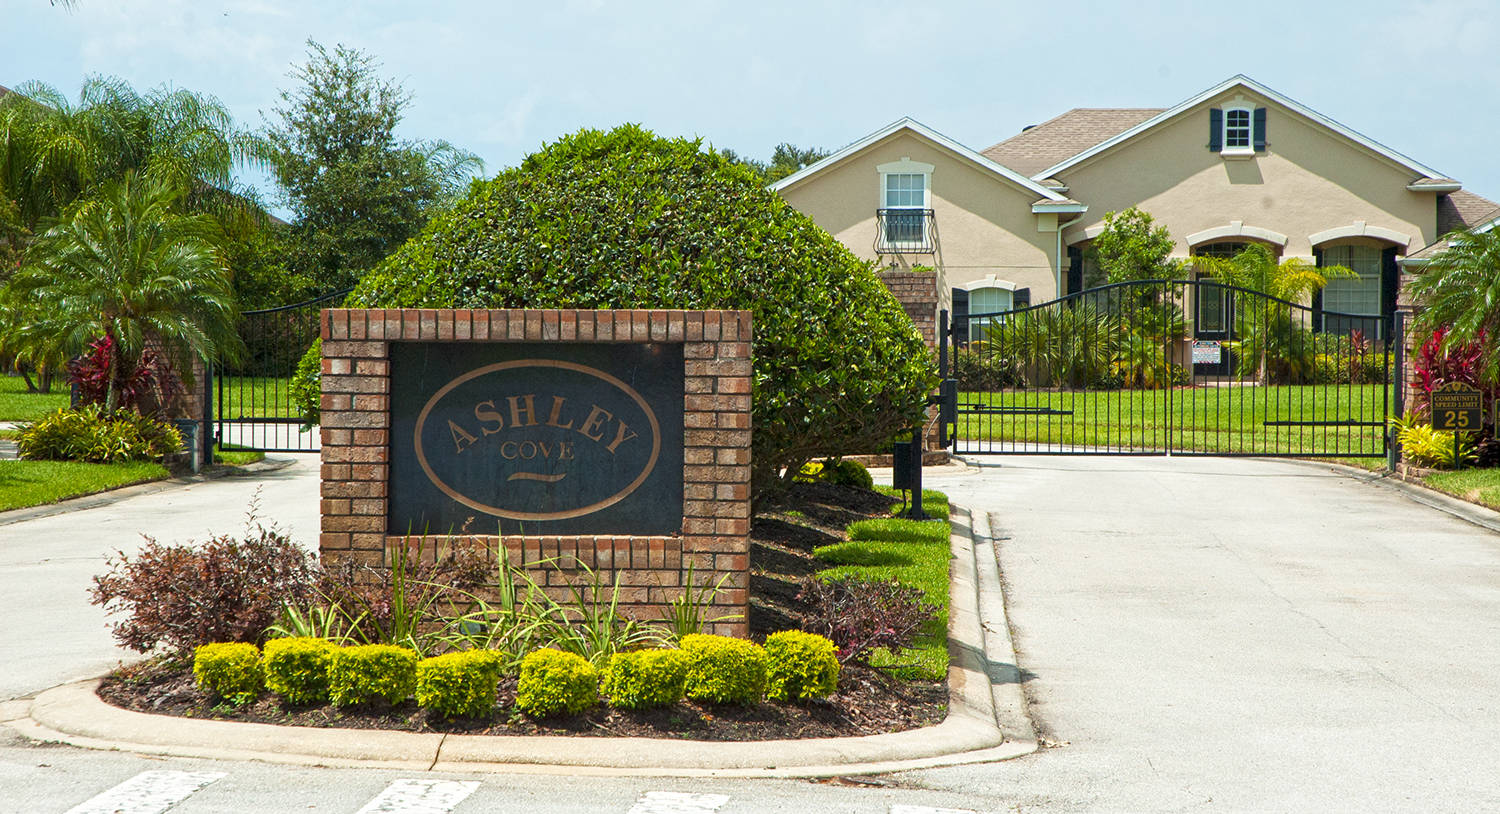 homes for sale in ashley cove kissimmee florida